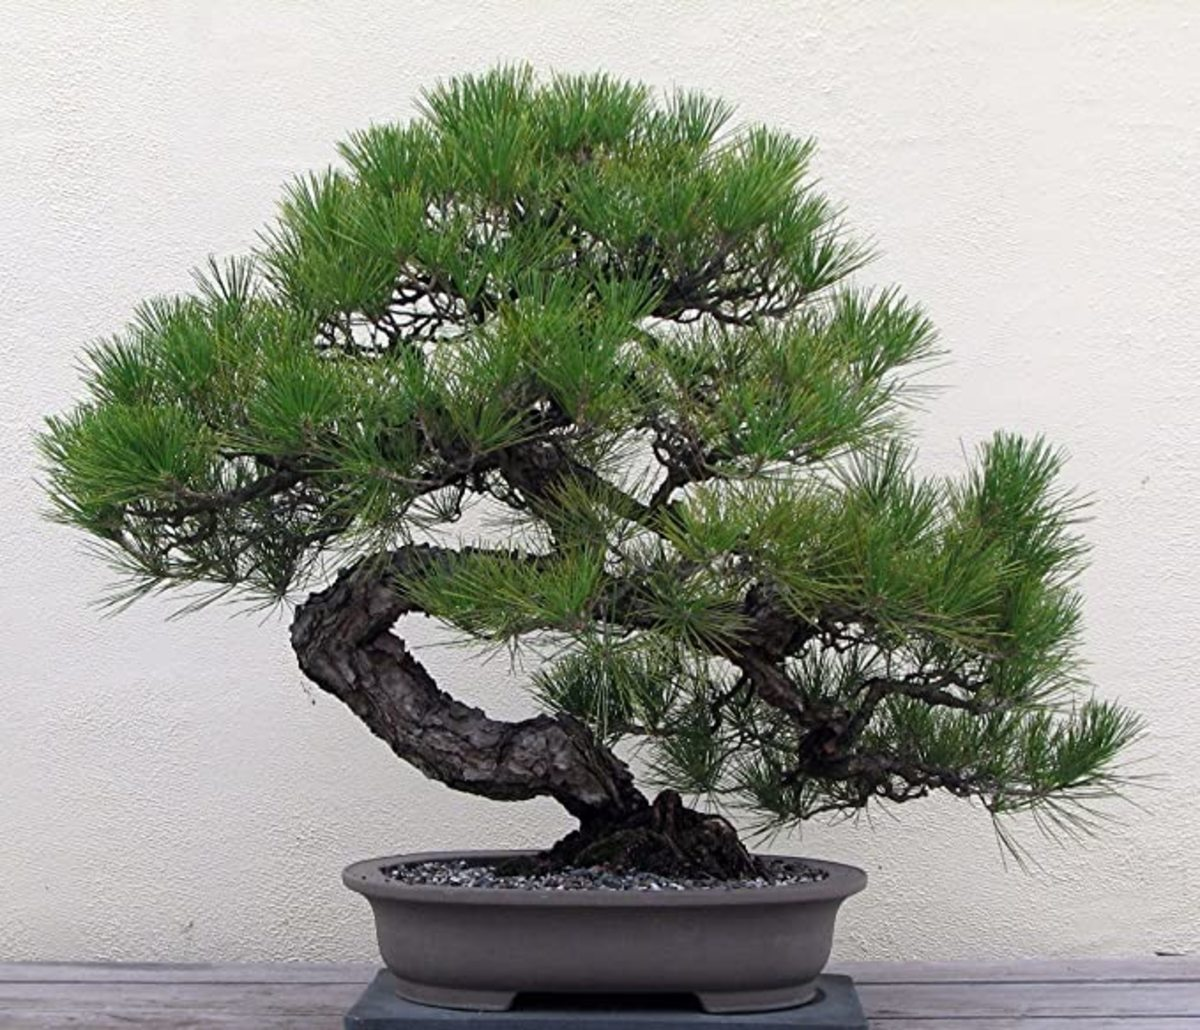 This article will help you care for you first bonsai tree.